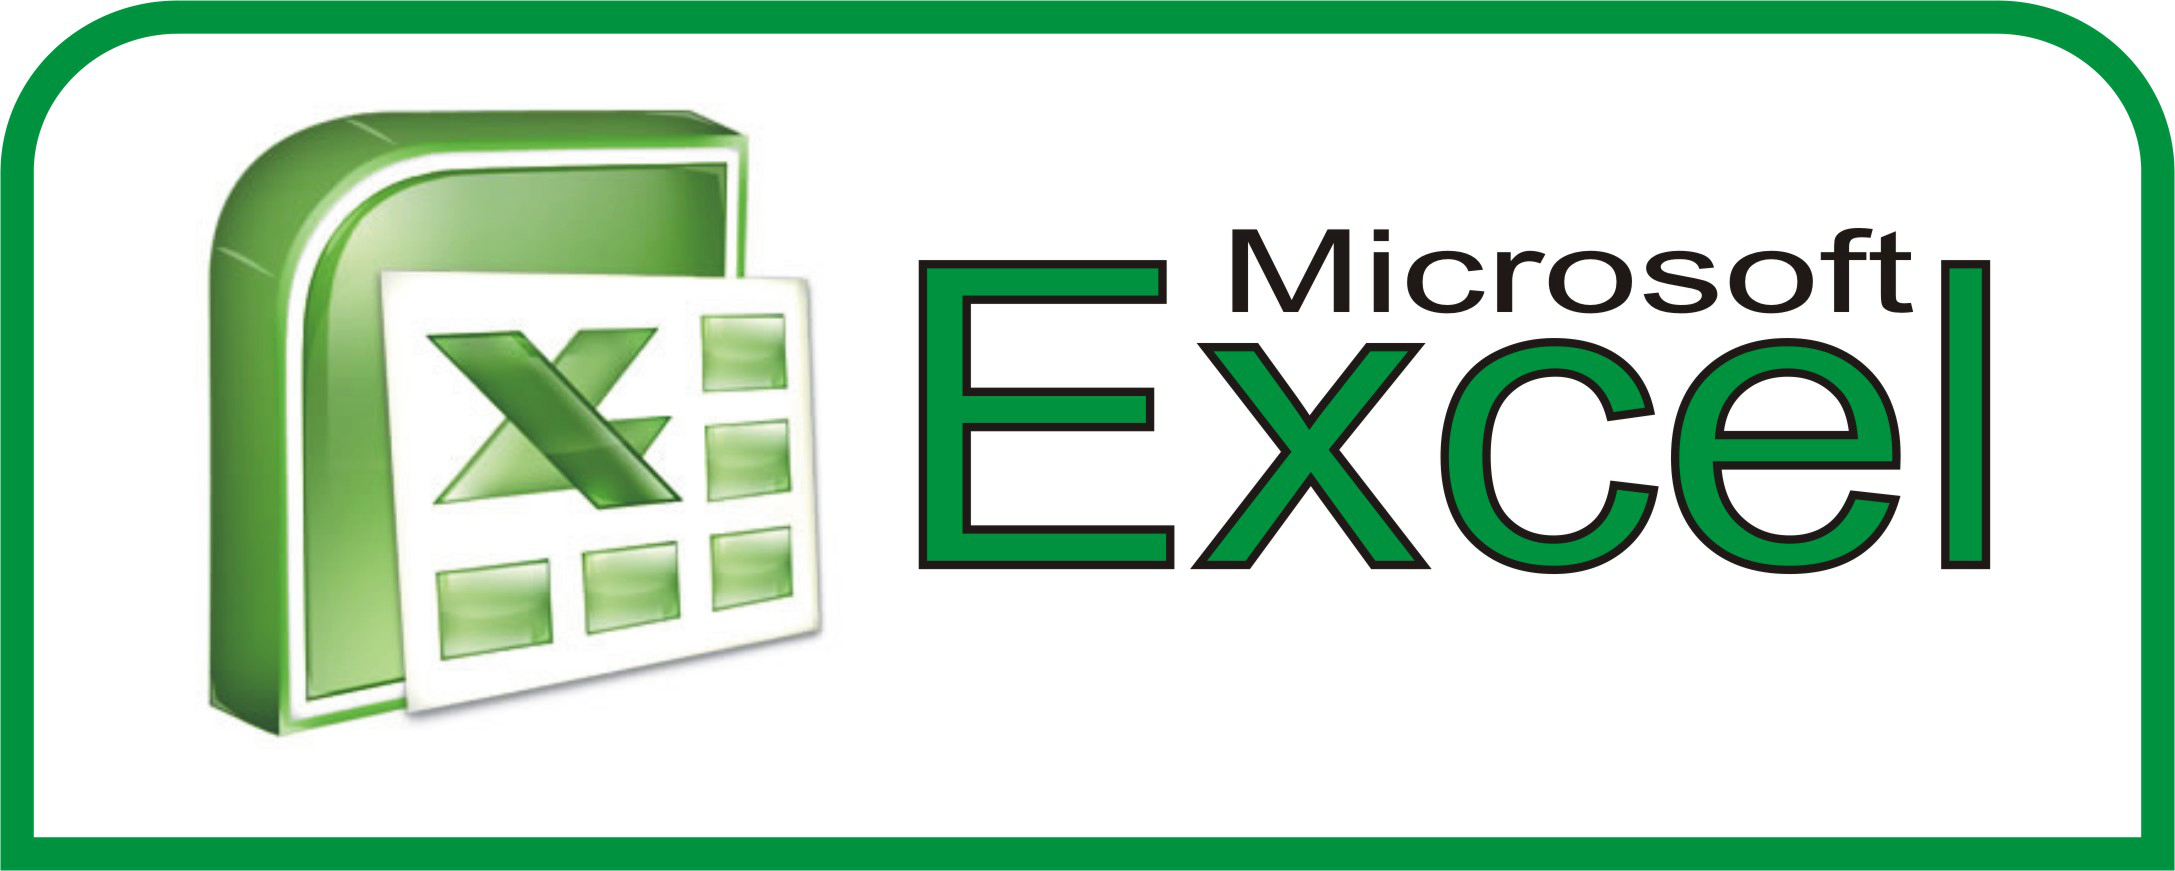 Ediblewildsus  Terrific  Excel Shortcuts You Probably Didnt Know About  Techdissected With Licious Word And Excel For Mac Besides How To Calculate Percentage Change In Excel Furthermore Insert A Drop Down List In Excel With Extraordinary How To Do A Sum In Excel Also Excel Academy Charter Schools In Addition Excel At Something And Insert Excel File Into Powerpoint As Well As Macros En Excel Additionally Excel Hyperlink Formula From Techdissectedcom With Ediblewildsus  Licious  Excel Shortcuts You Probably Didnt Know About  Techdissected With Extraordinary Word And Excel For Mac Besides How To Calculate Percentage Change In Excel Furthermore Insert A Drop Down List In Excel And Terrific How To Do A Sum In Excel Also Excel Academy Charter Schools In Addition Excel At Something From Techdissectedcom